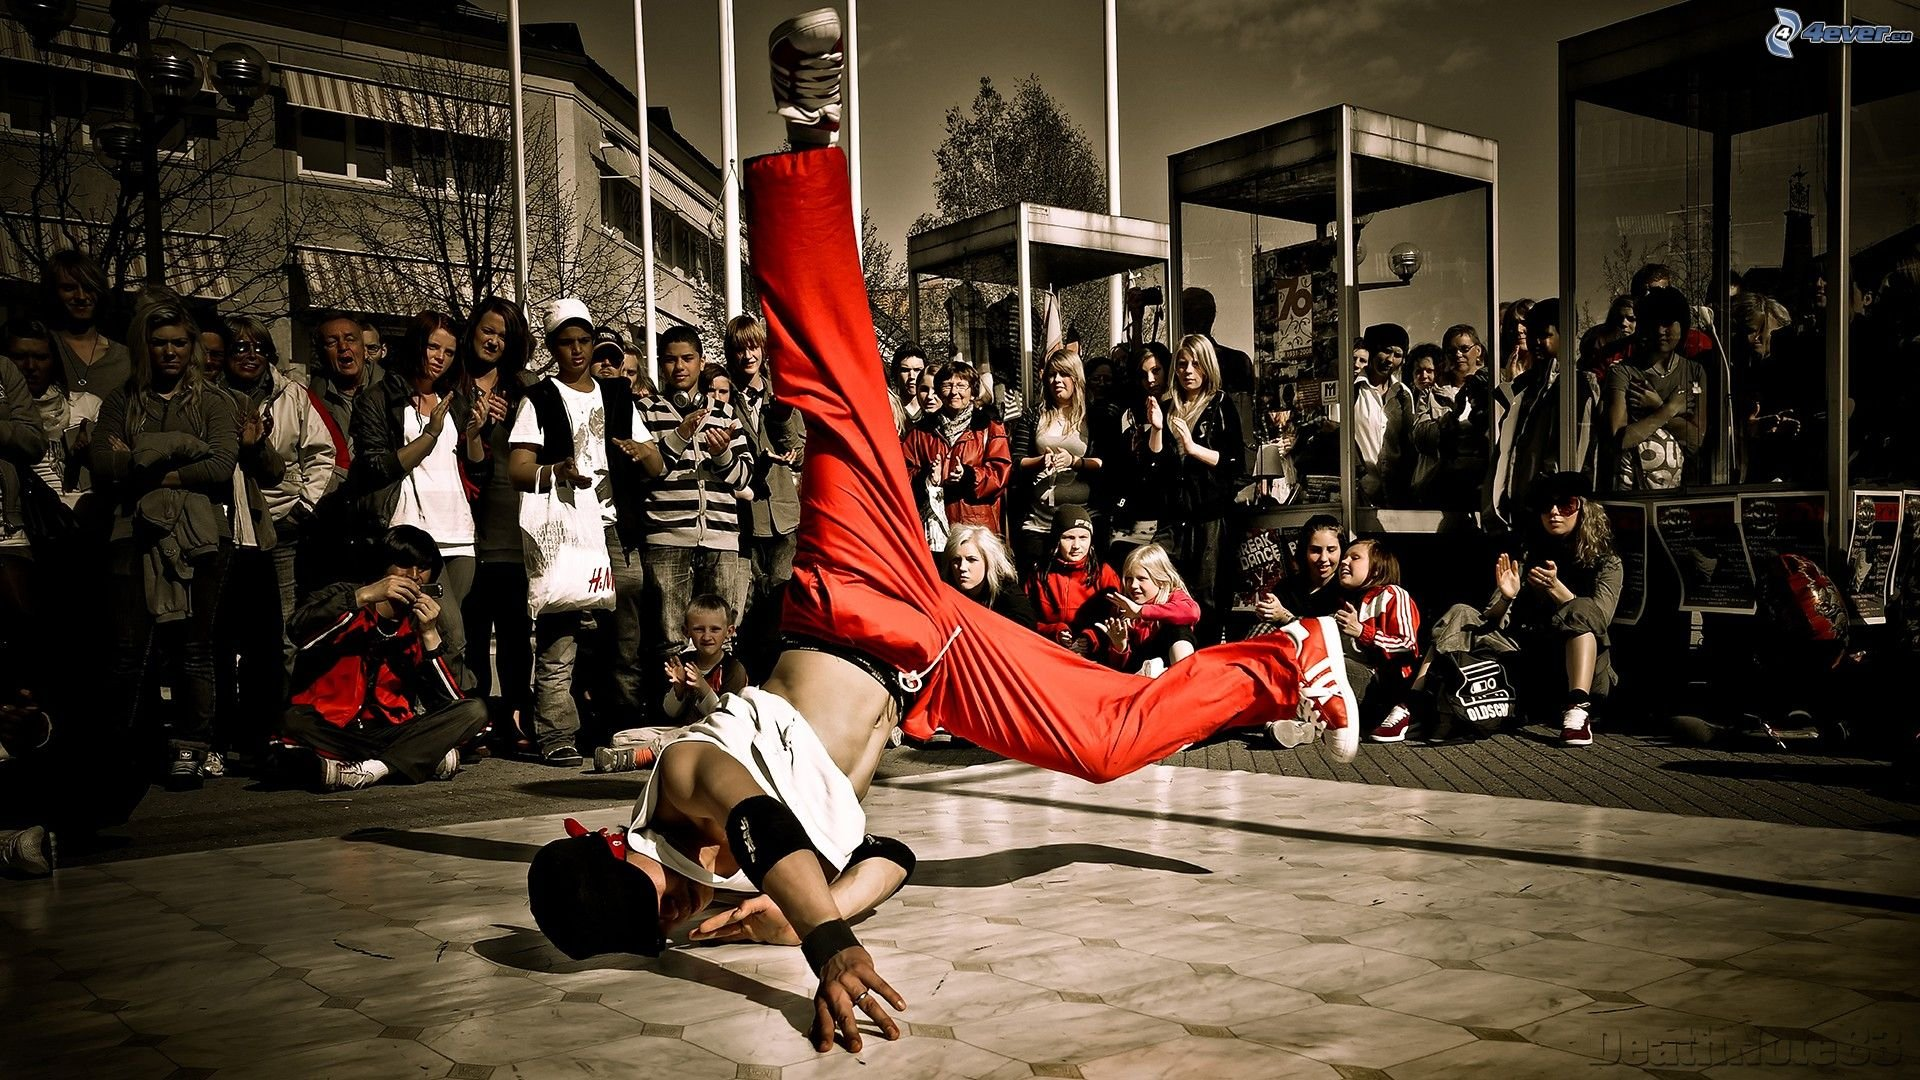 Young man during a breakdancing routine with a large audience on the street